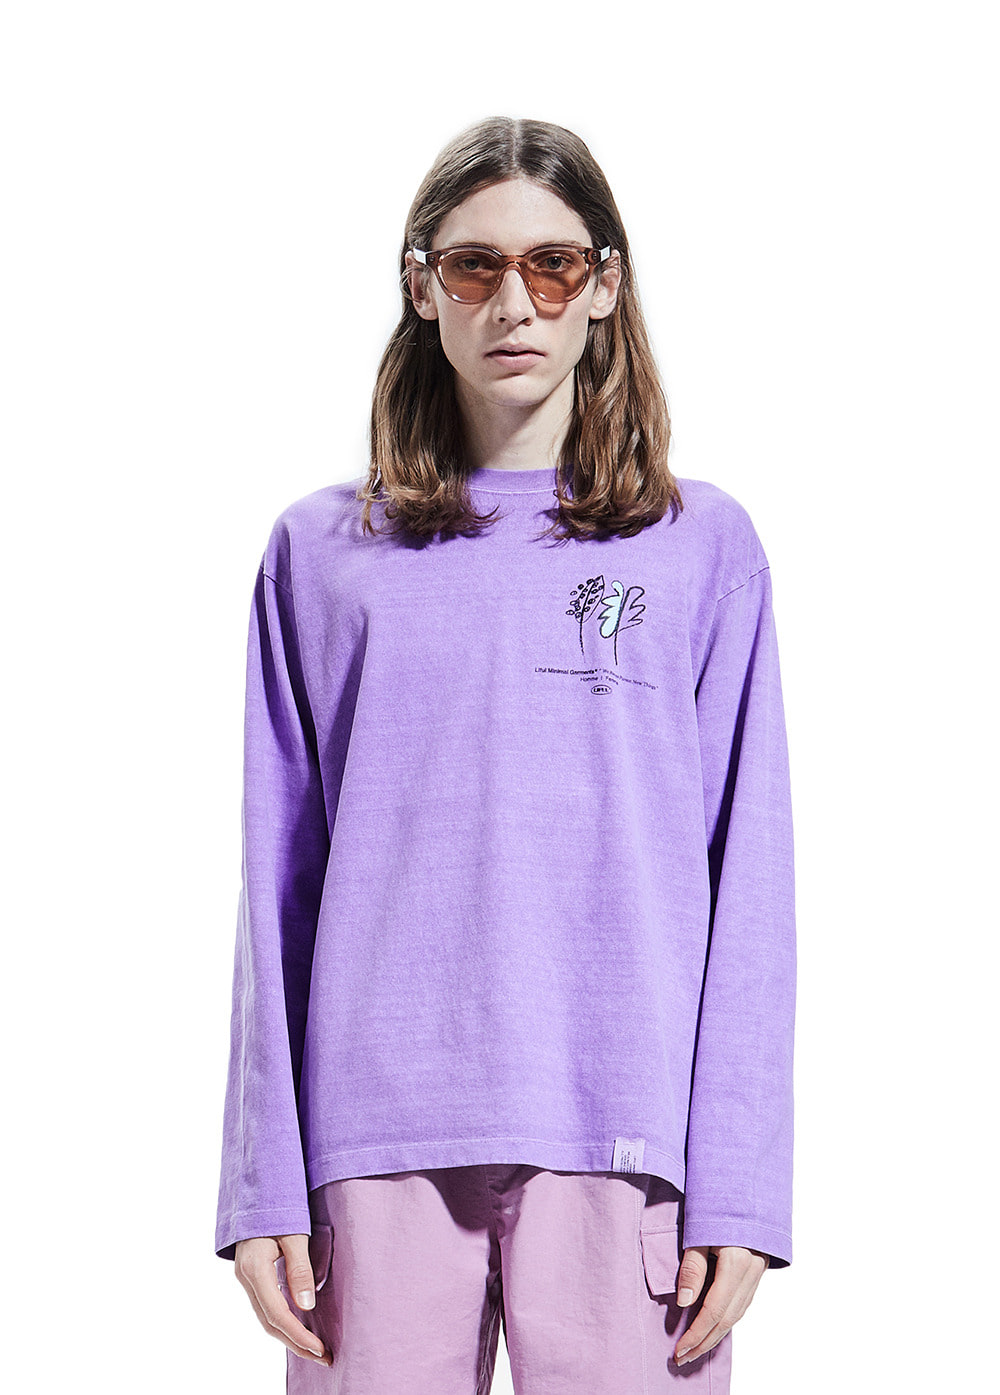 P-DYED FLOWER LONG SLEEVE TEE violet